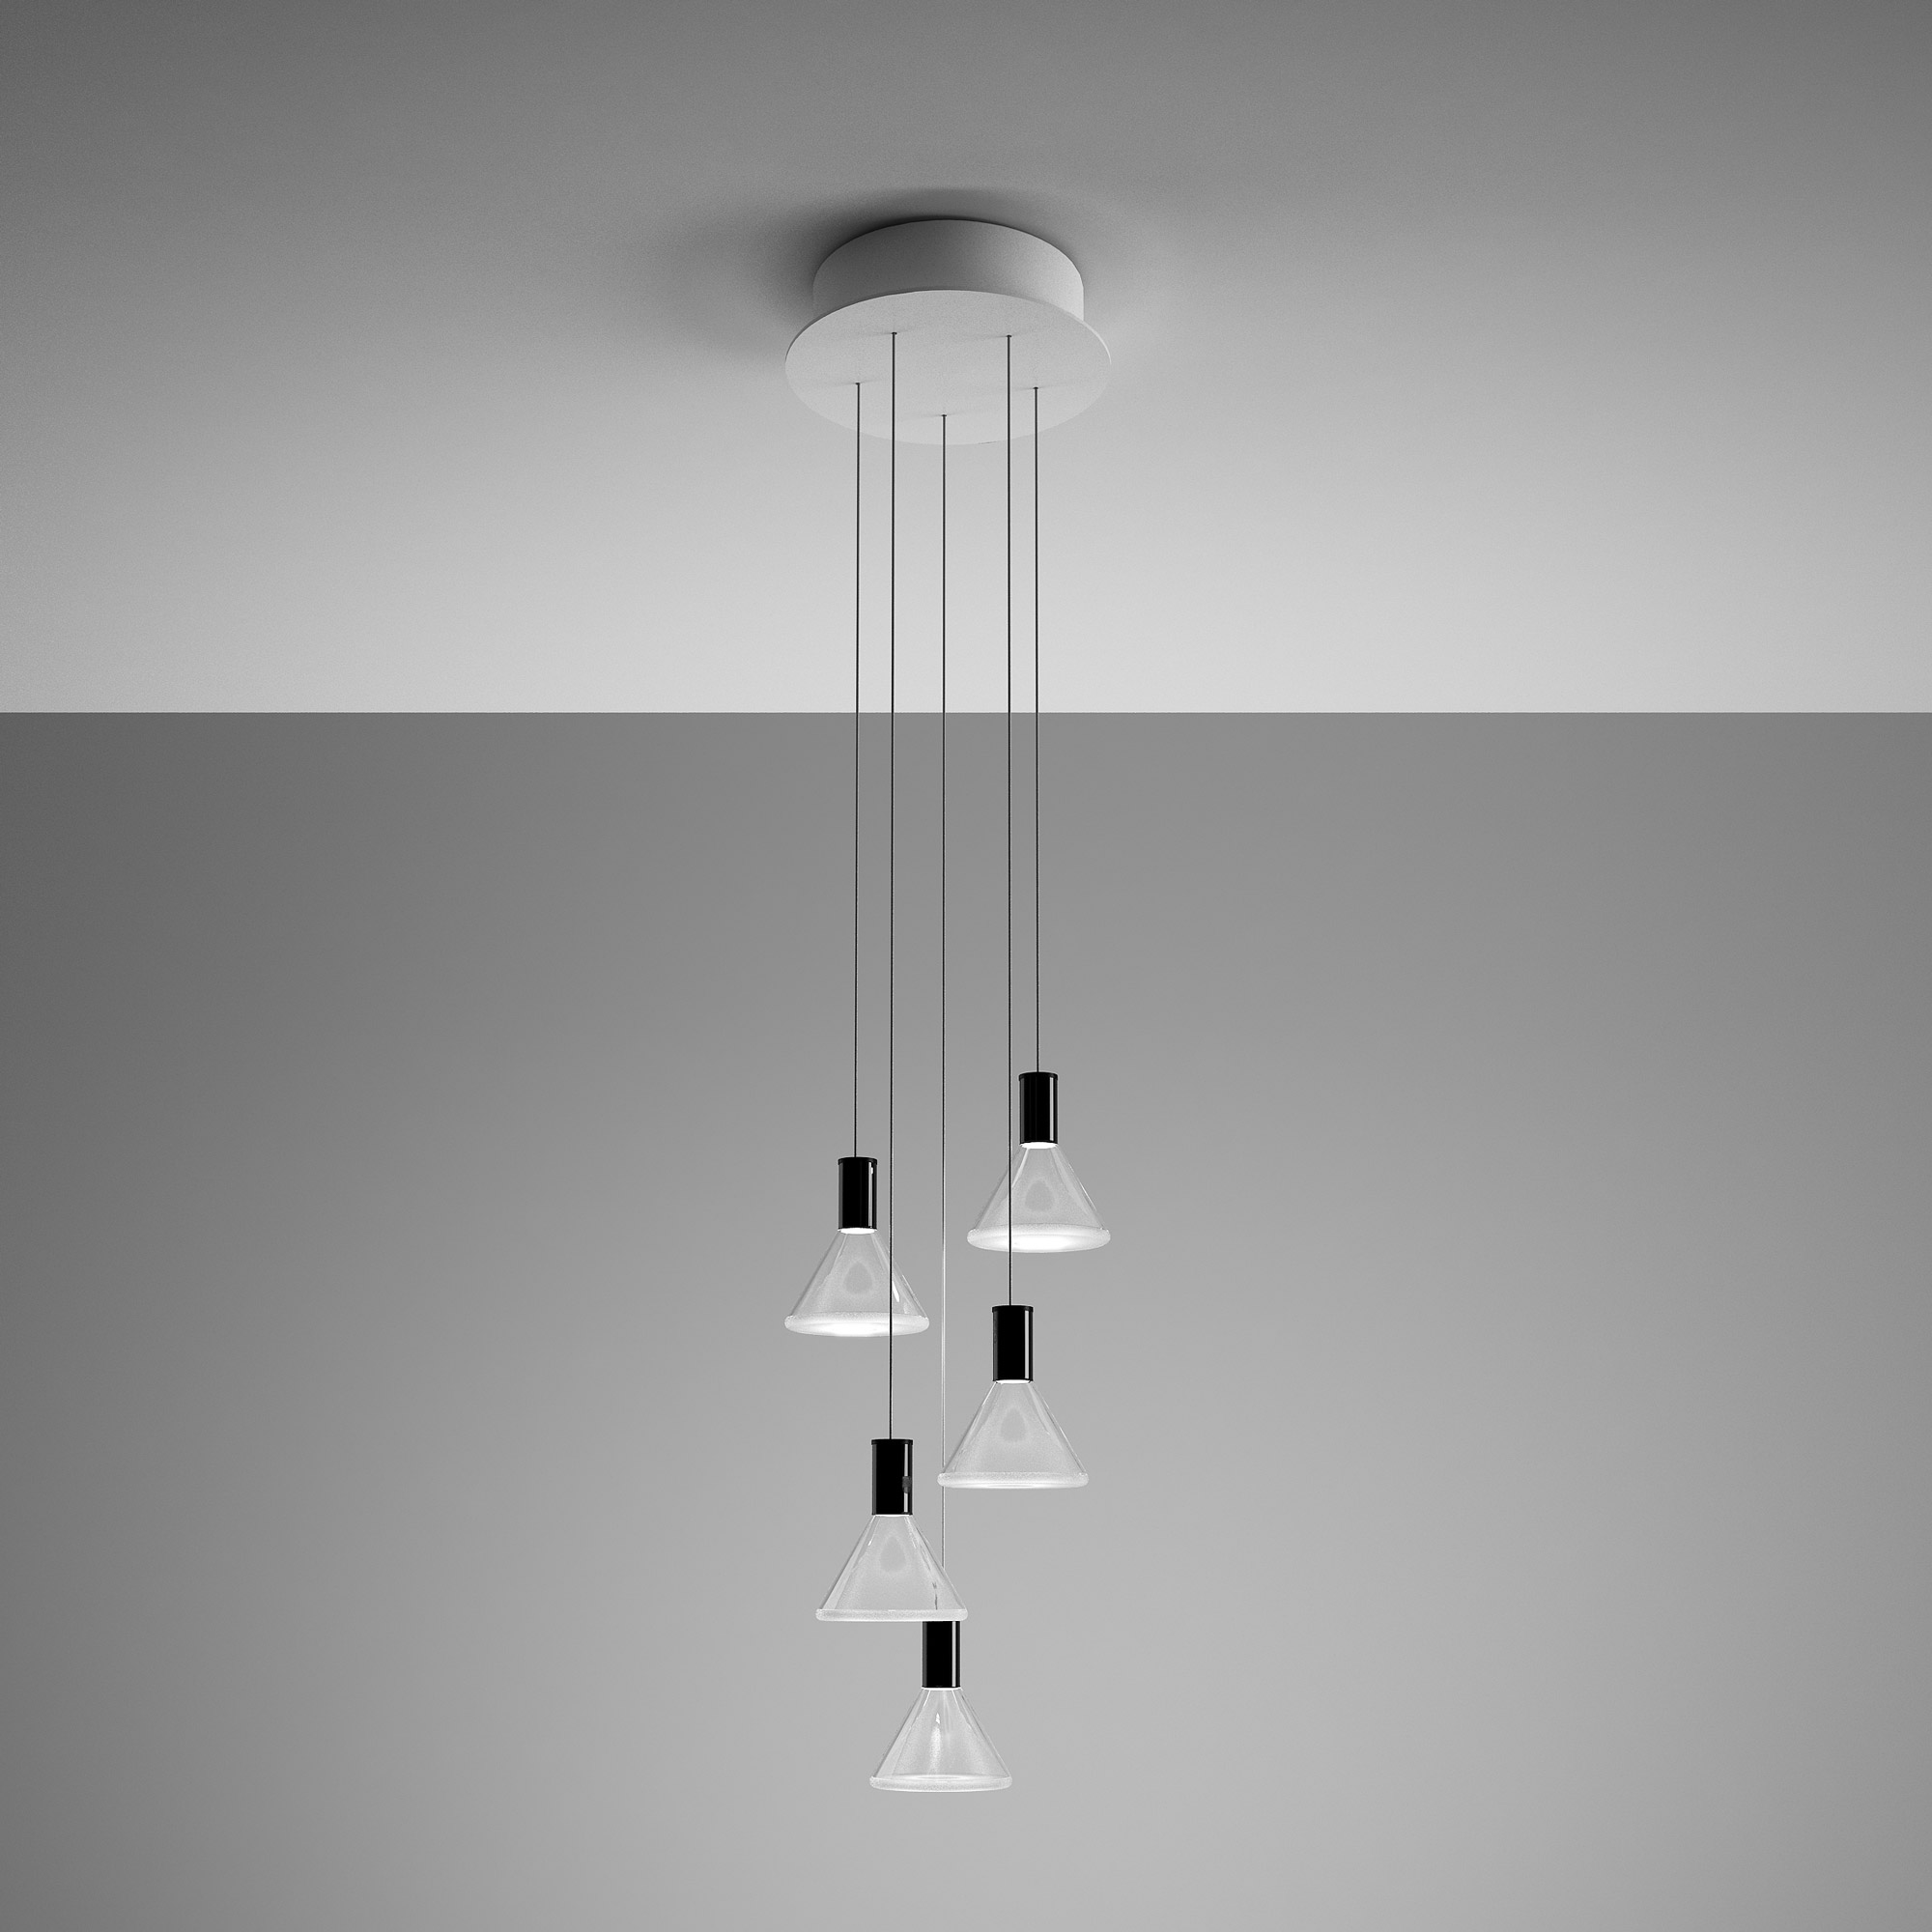 Polair Round Canopy Multi Light Pendant By Fabbian F32a42 A 00